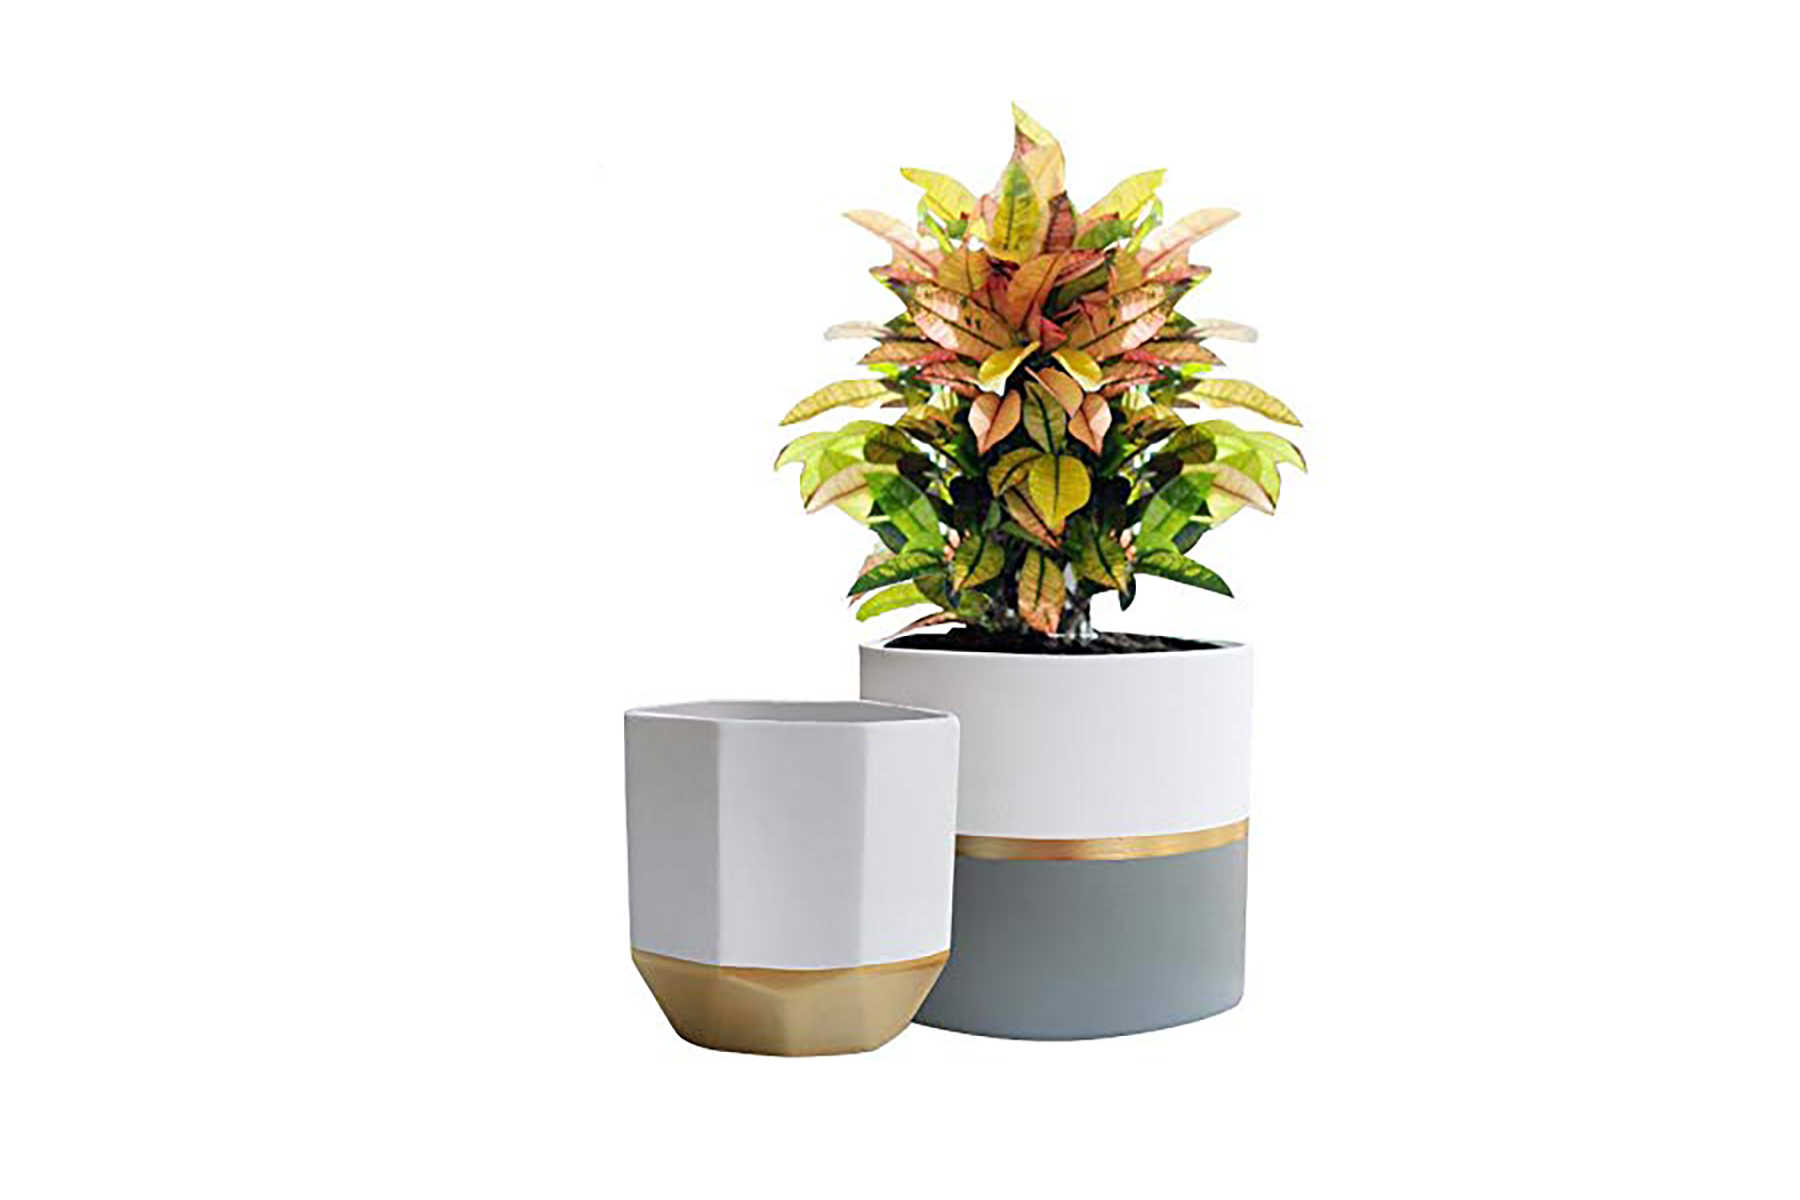 183 & Best Indoor Plant Pots from Amazon That Are Actually Pretty | Real ...